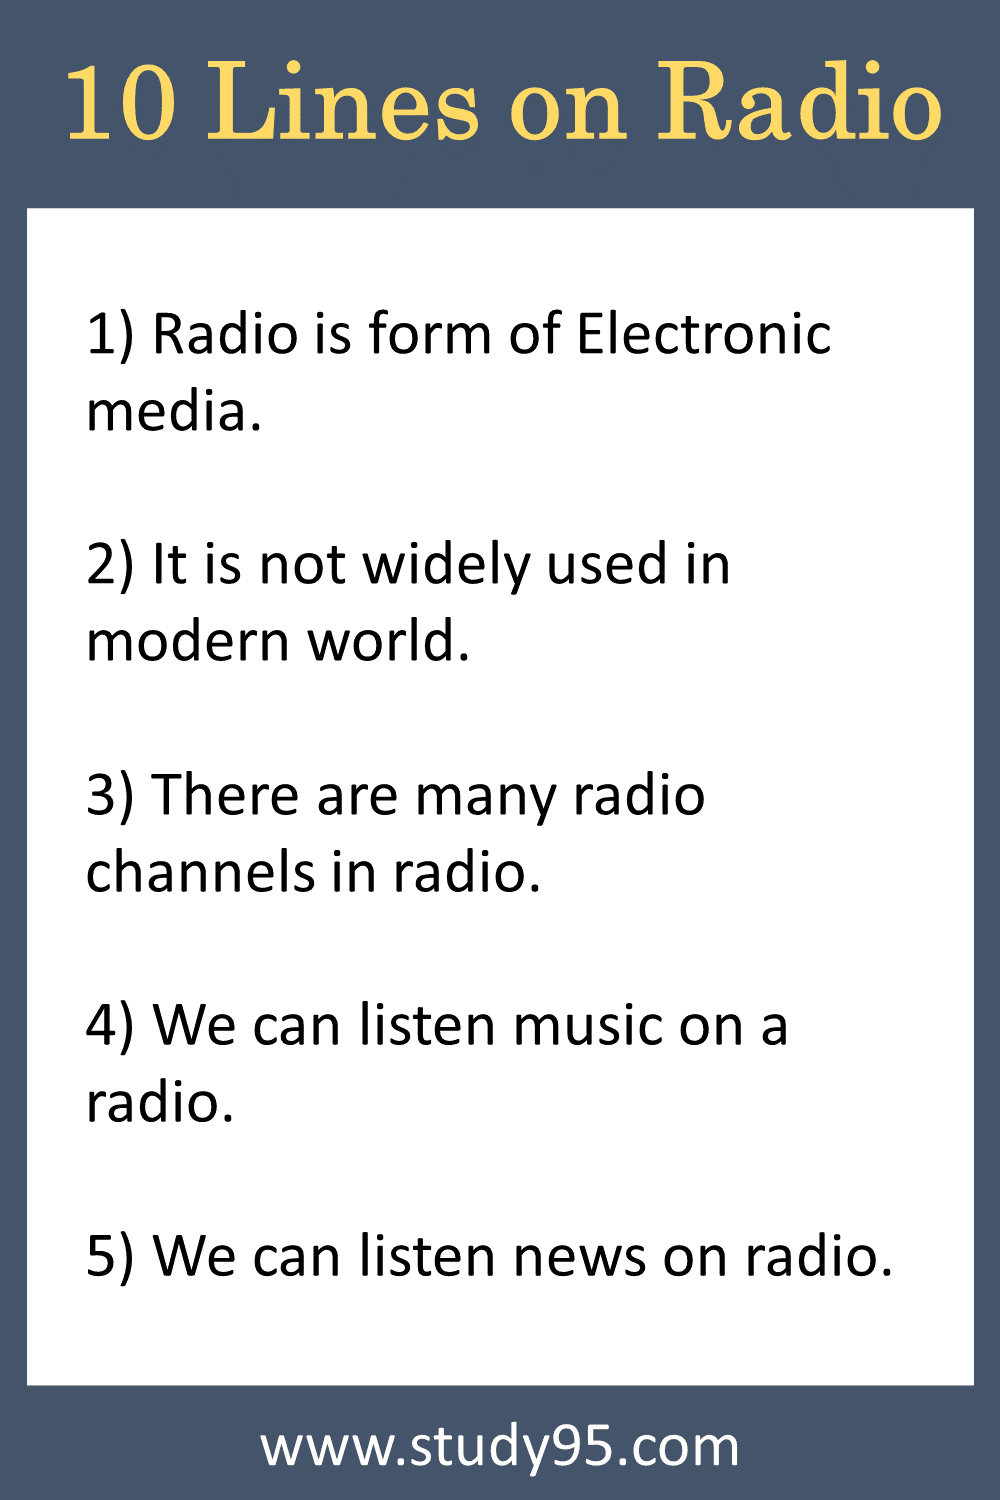 Lines on Radio in English